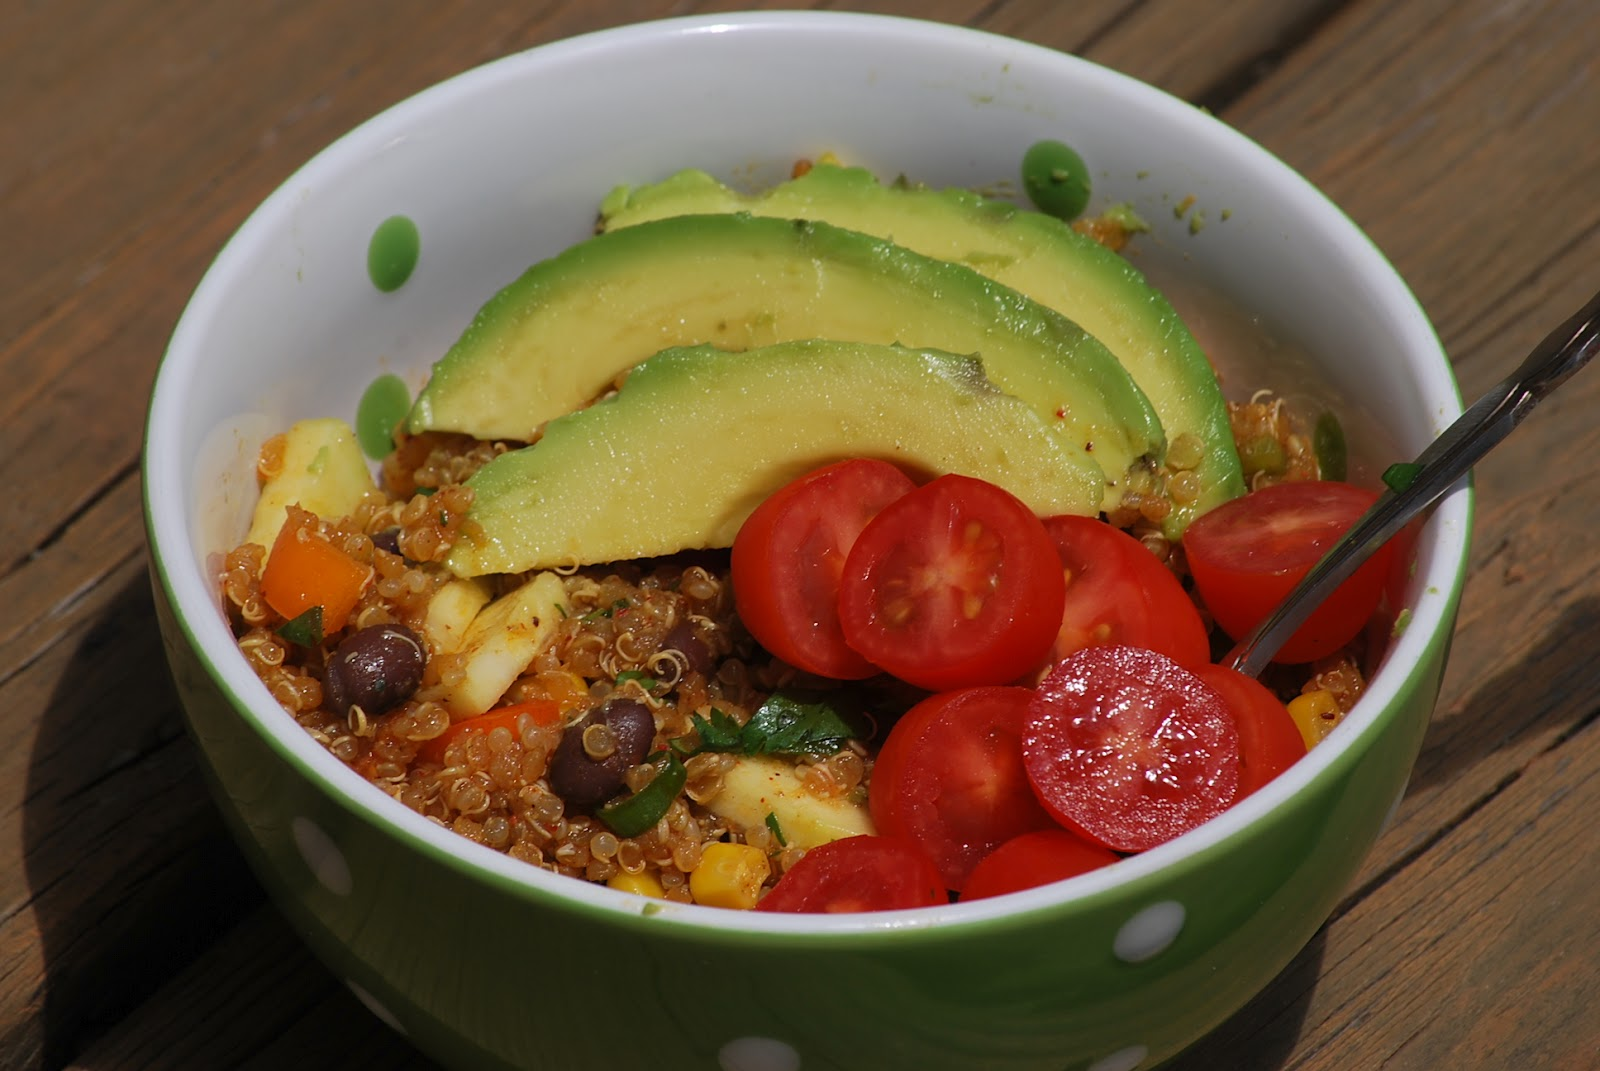 ... pumpkin seeds toasted pumpkin seeds quinoa and corn salad with pumpkin